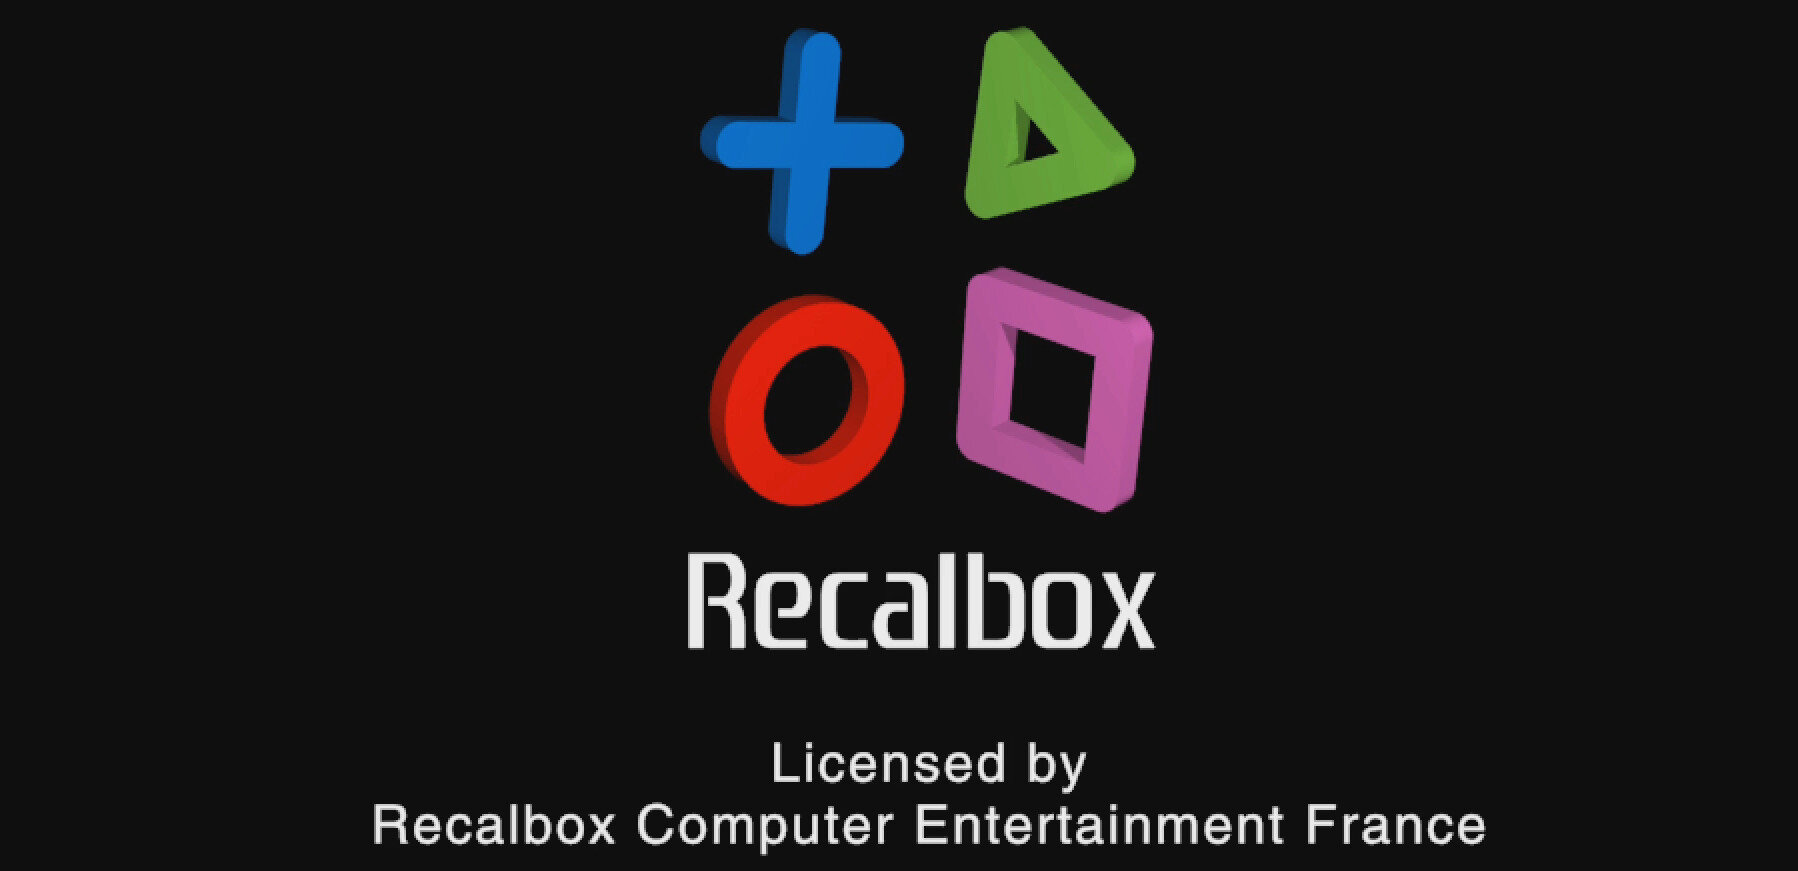 Recalbox OS 6.0 est disponible, comment l'installer sur un Raspberry Pi 3B+ ?